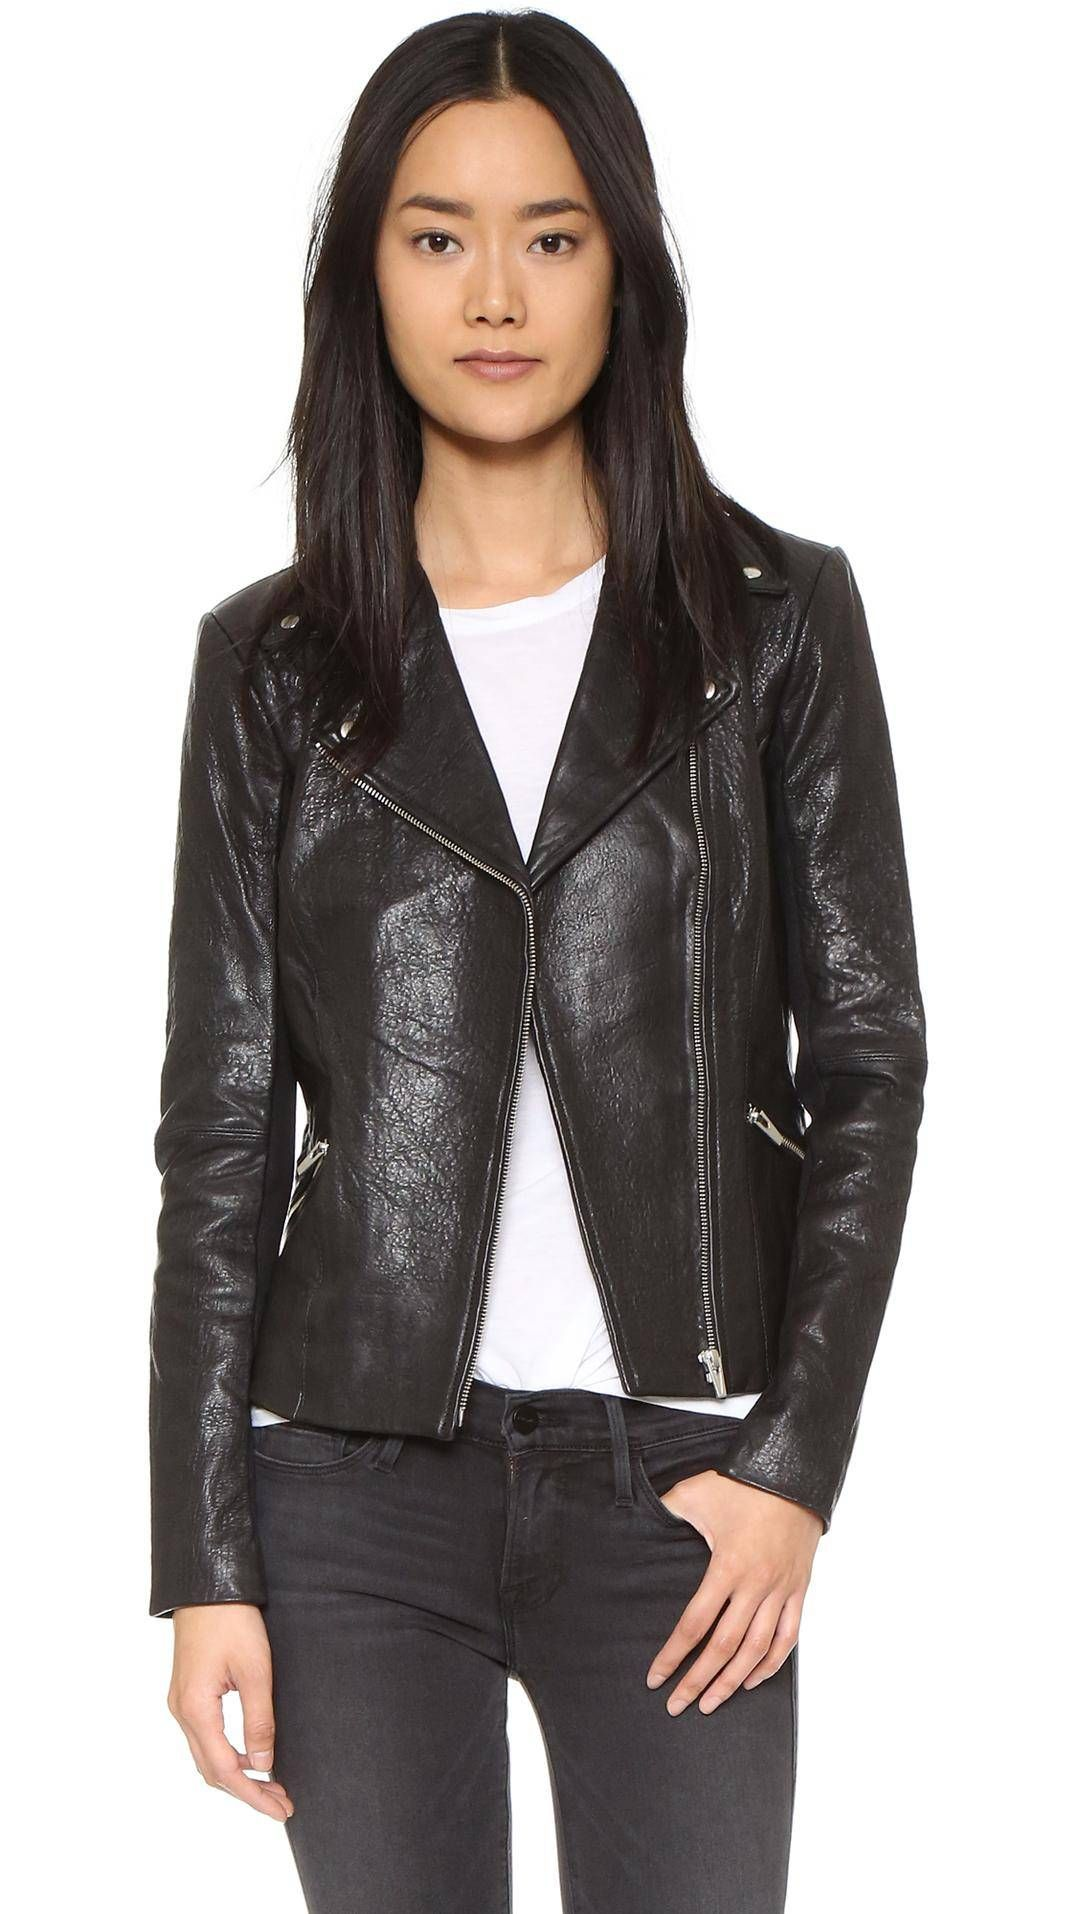 The FashionGirl Way to Wear a Leather Jacket Every Day